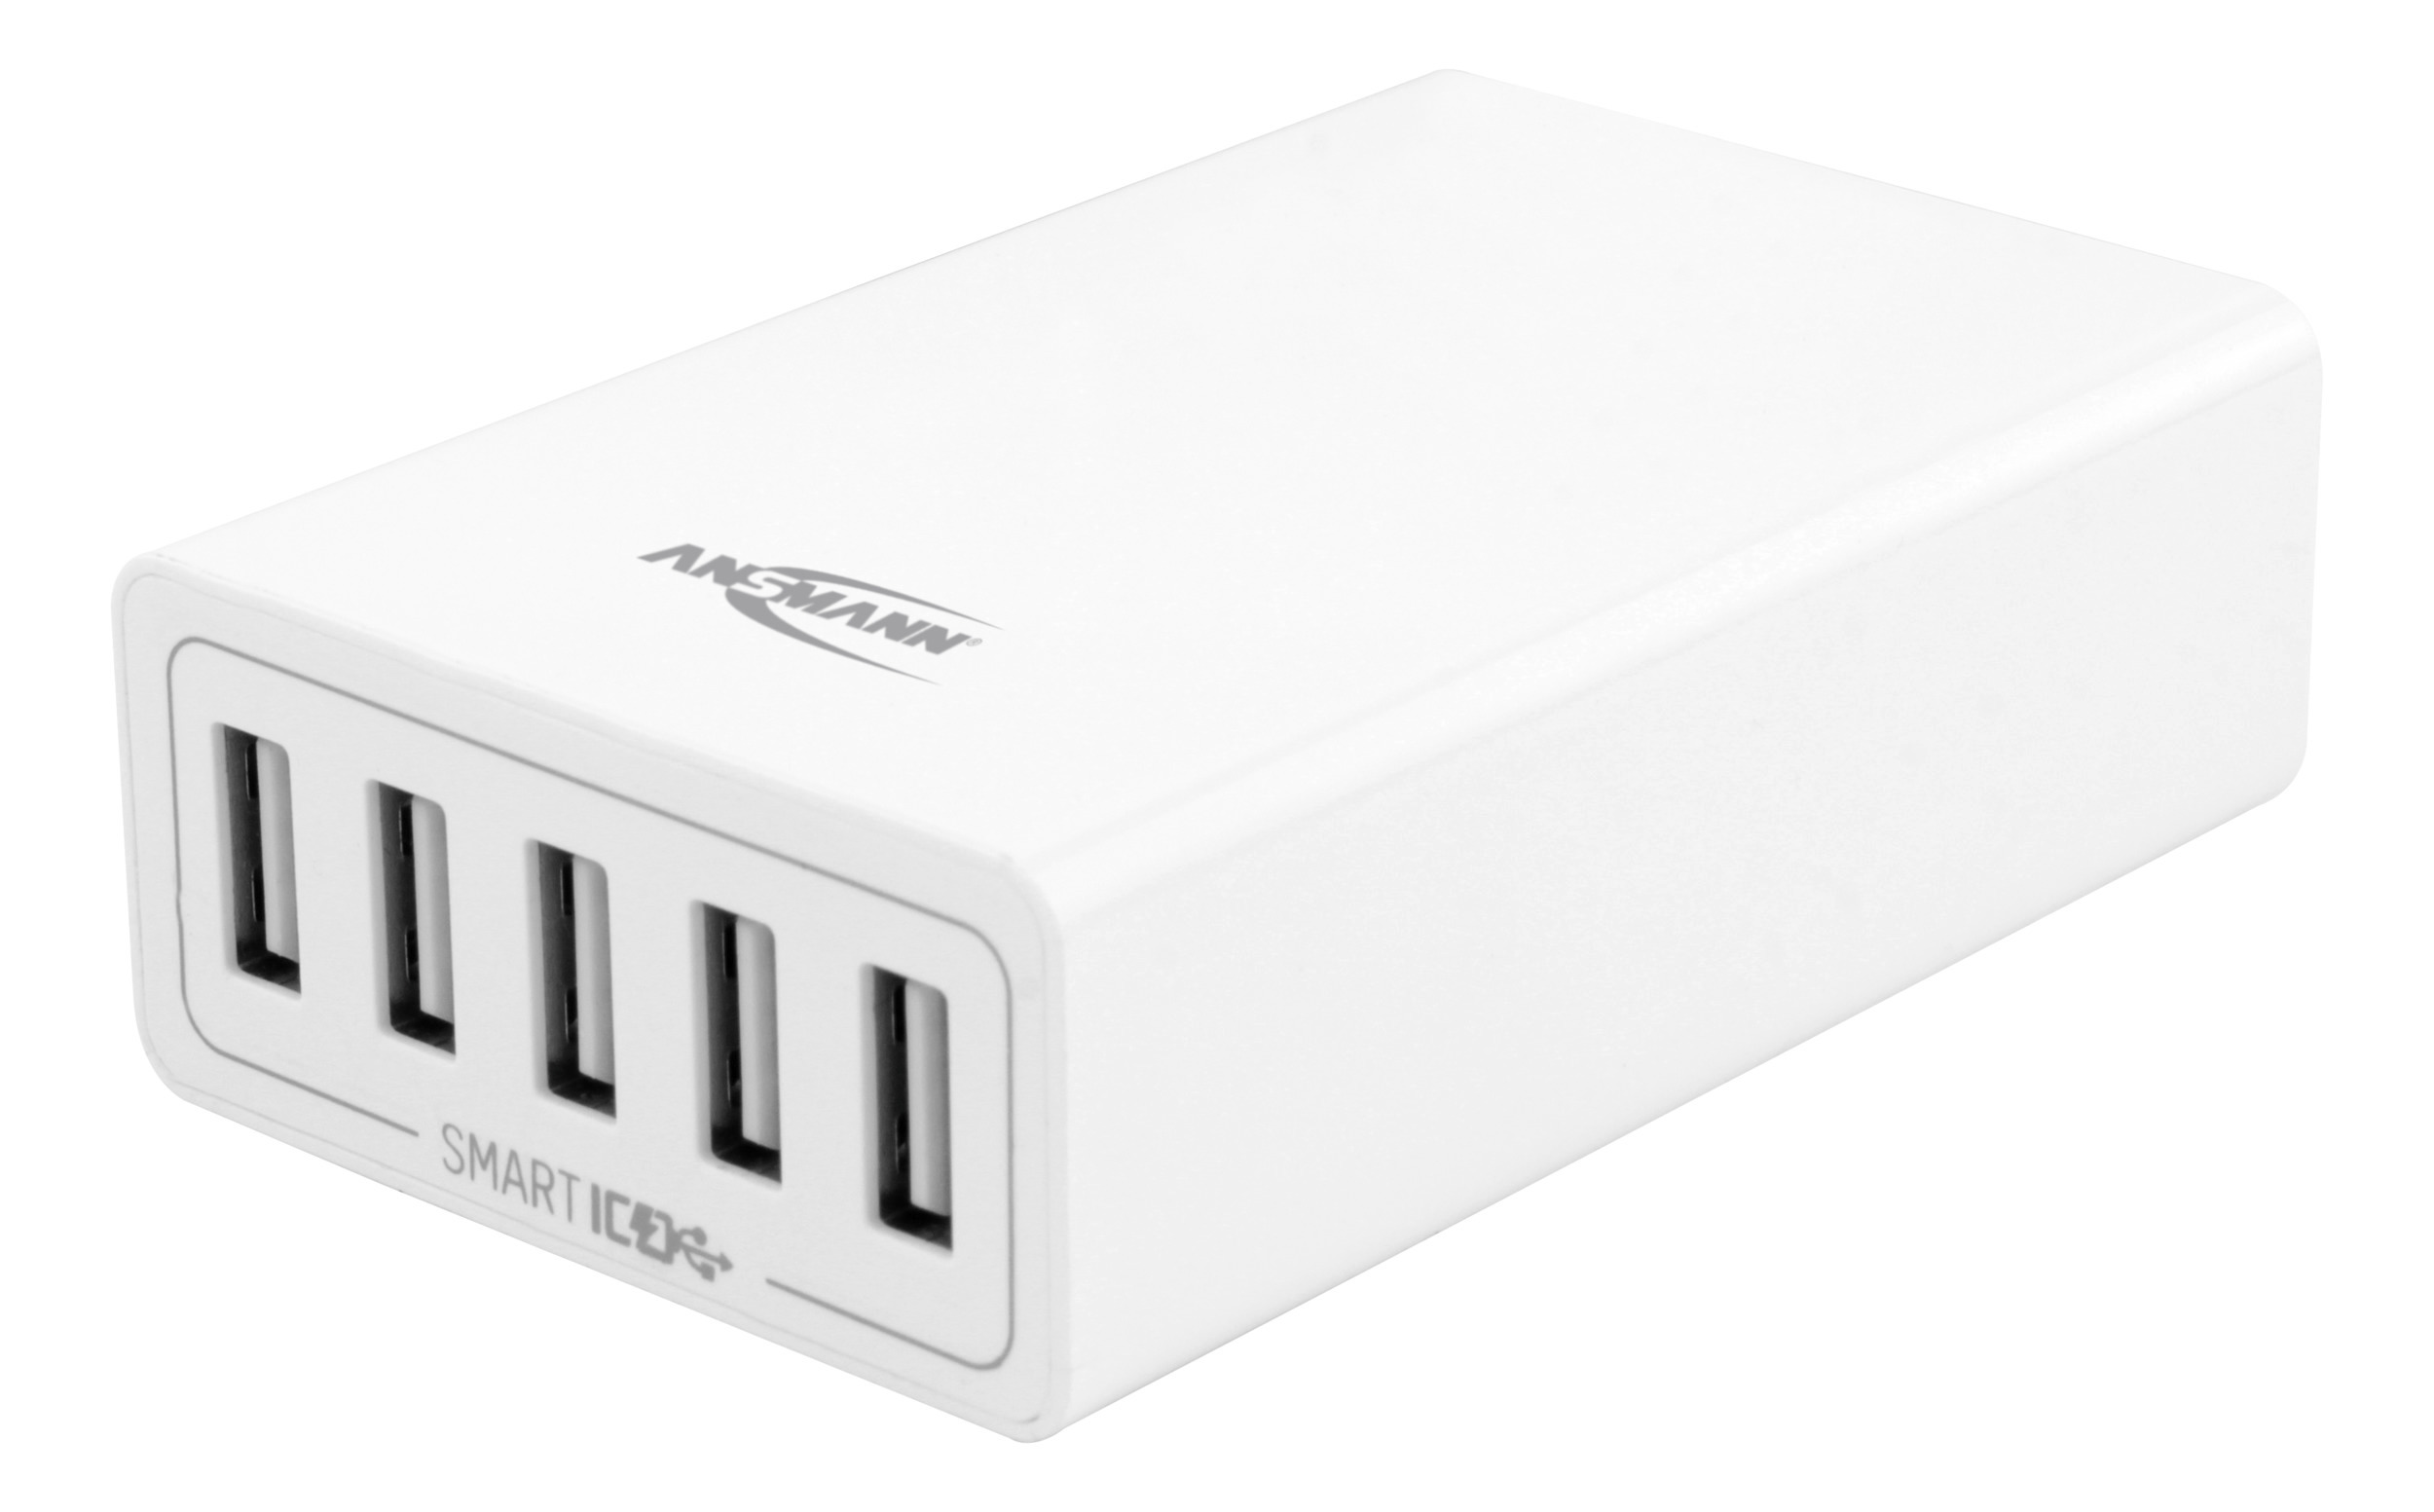 Home Charger 580 with 5 USB ports